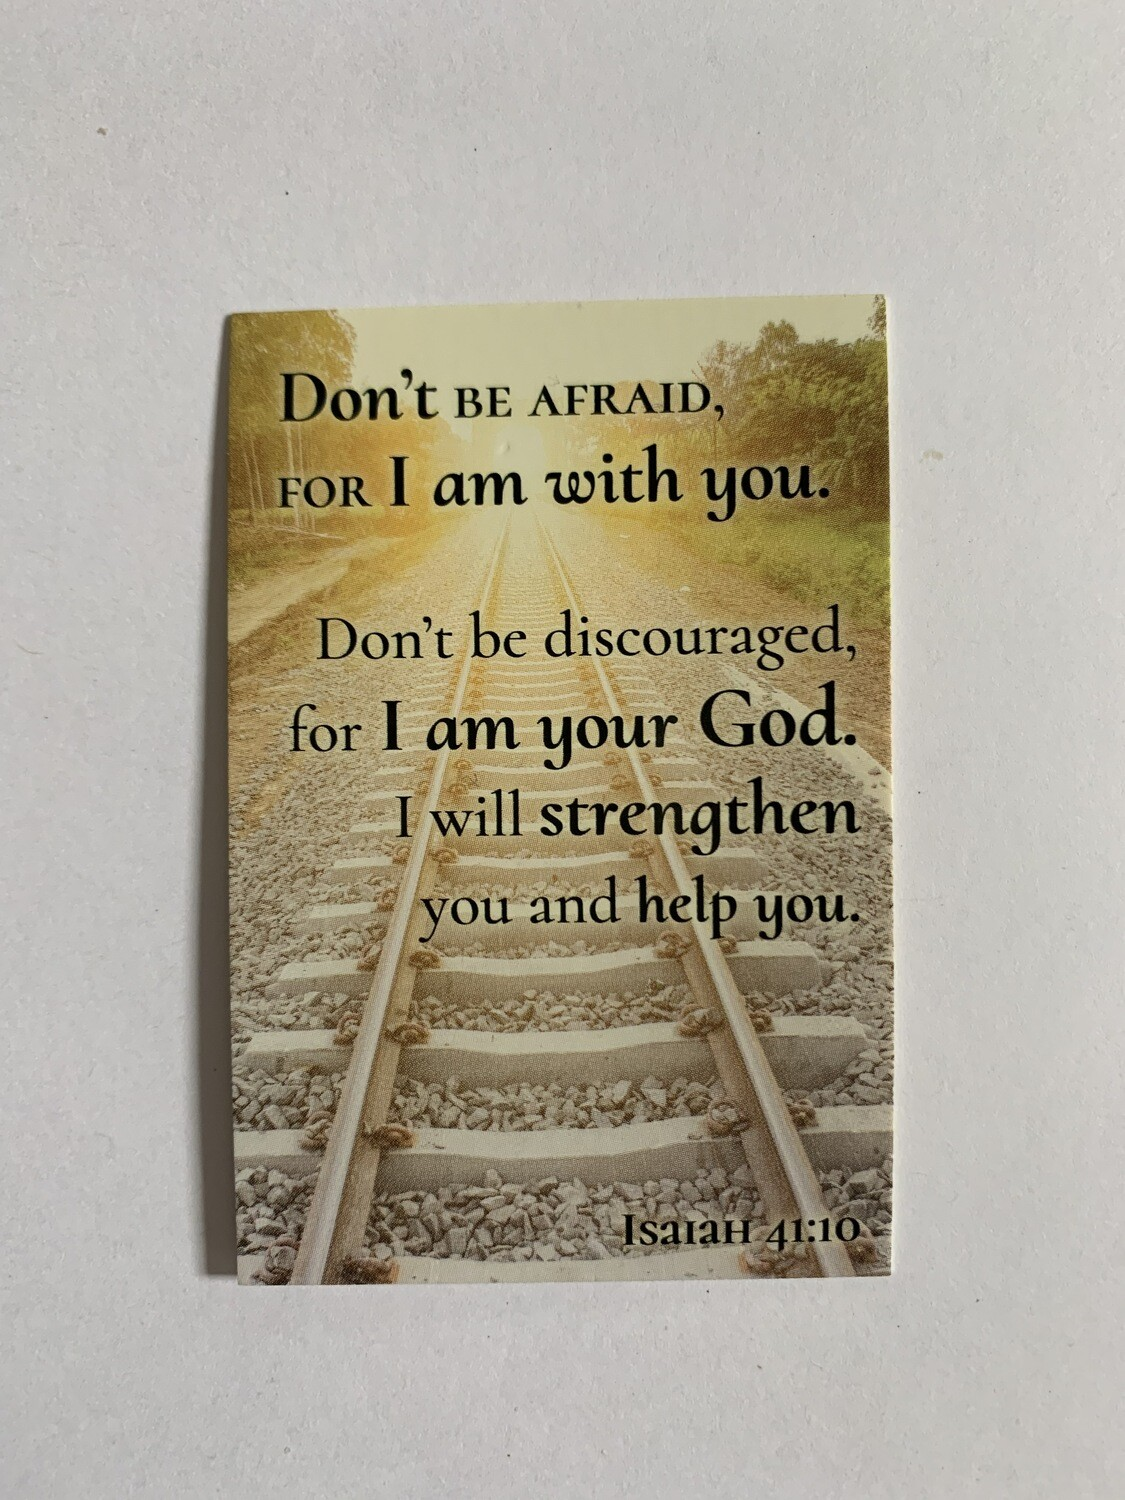 Pass It On - Don't Be Afraid Isaiah 41:10